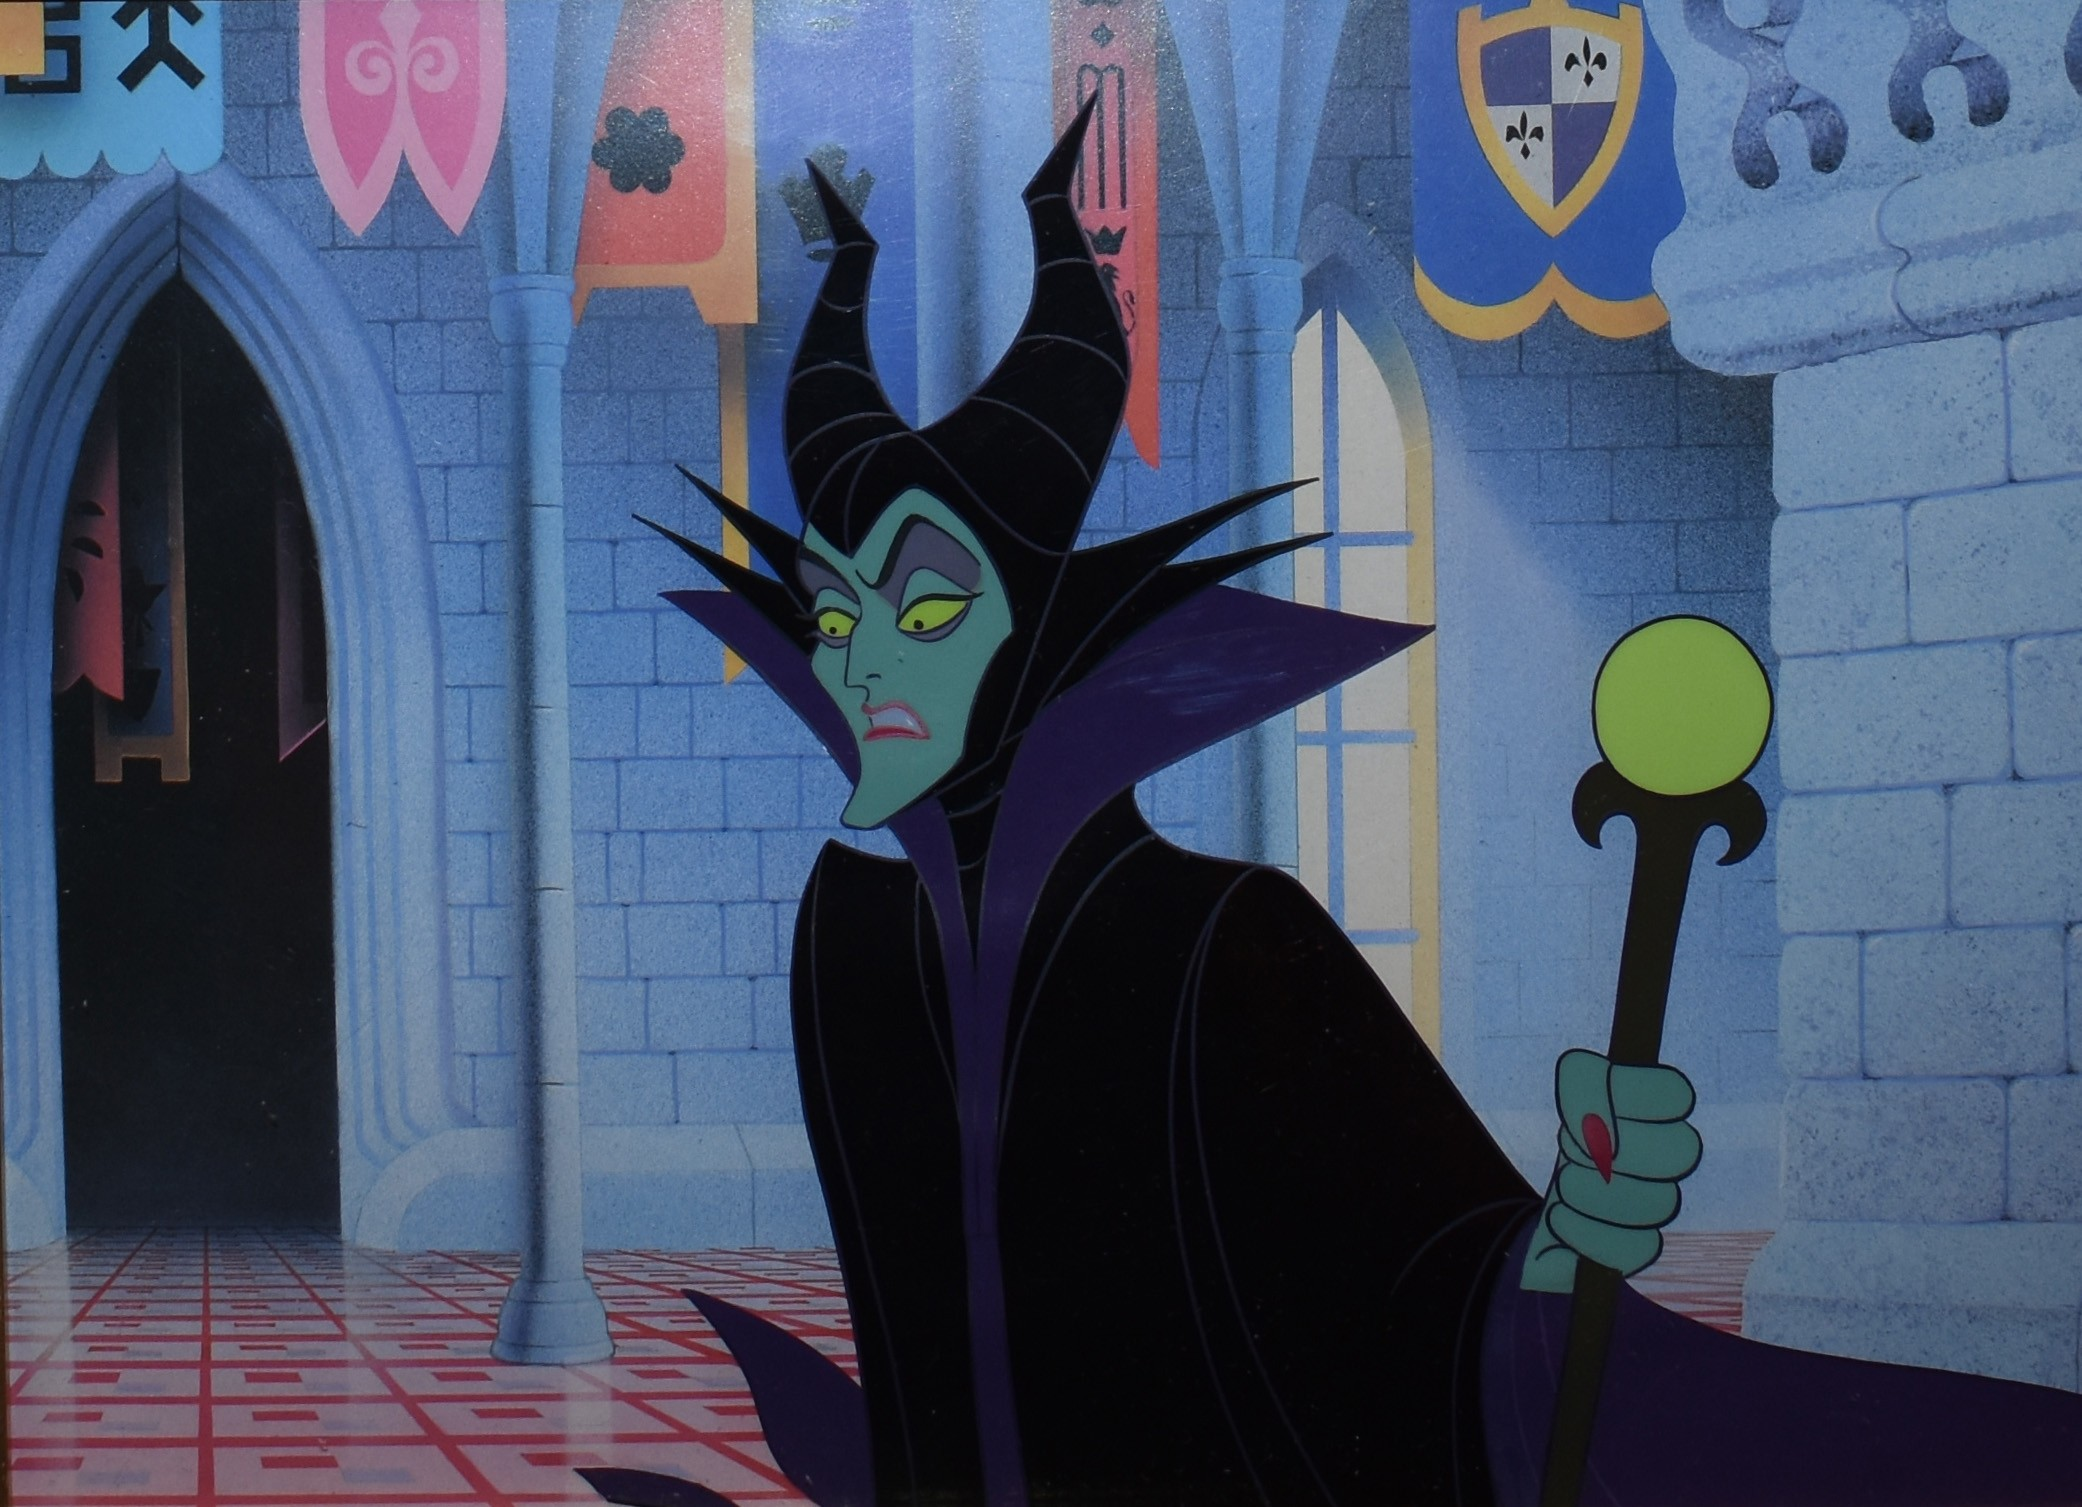 Animation Collection Maleficent Diablo Cel From – Wonderful